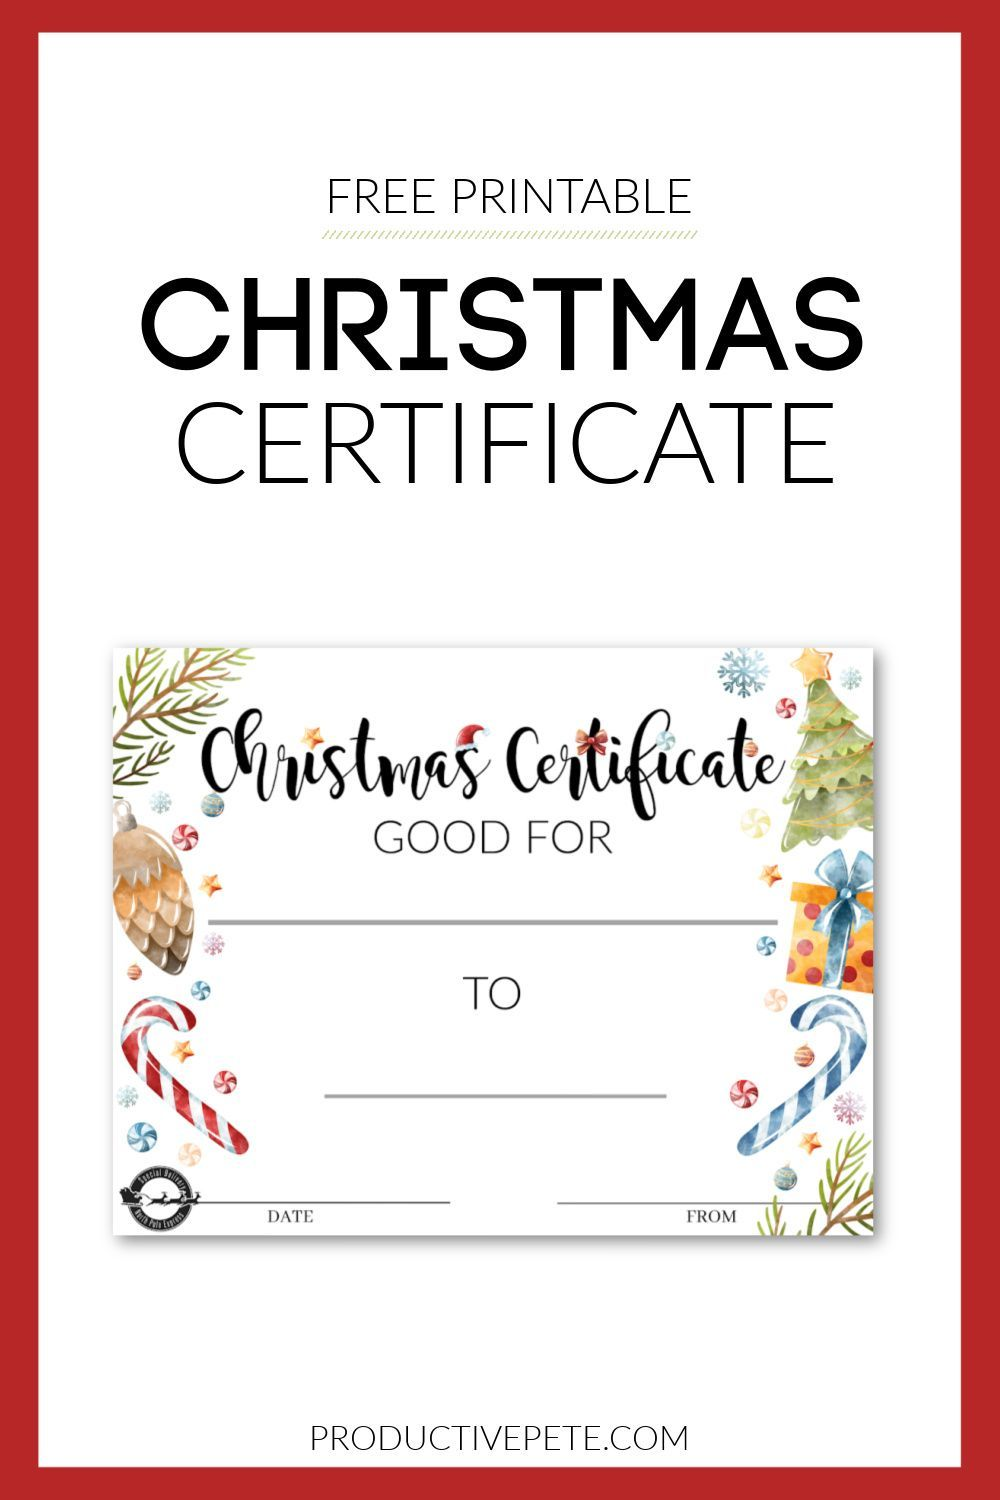 Printable Christmas Gift Certificate Perfect For Personalized Gifts Christmas Gift Certificate Template Christmas Gift Certificate Printable Gift Certificate Christmas certificate template free download